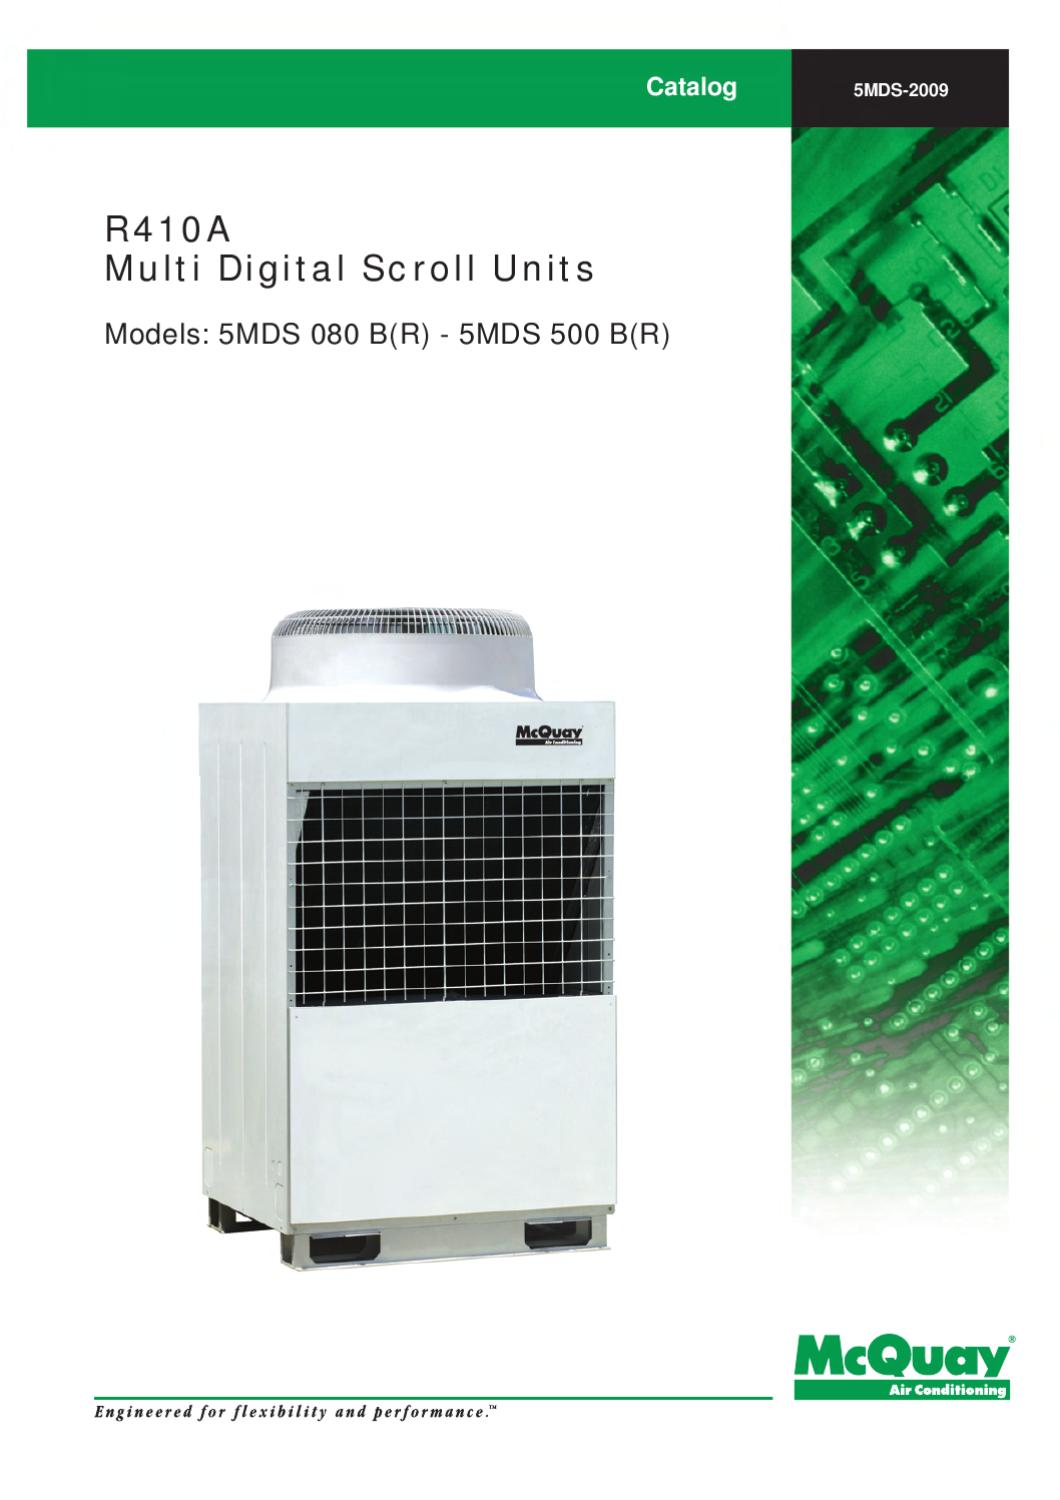 5mds 2009 By Navid Anari Issuu Wiring Diagram Schematics For The 18500 To 36000 Btu Ac Unit With 2